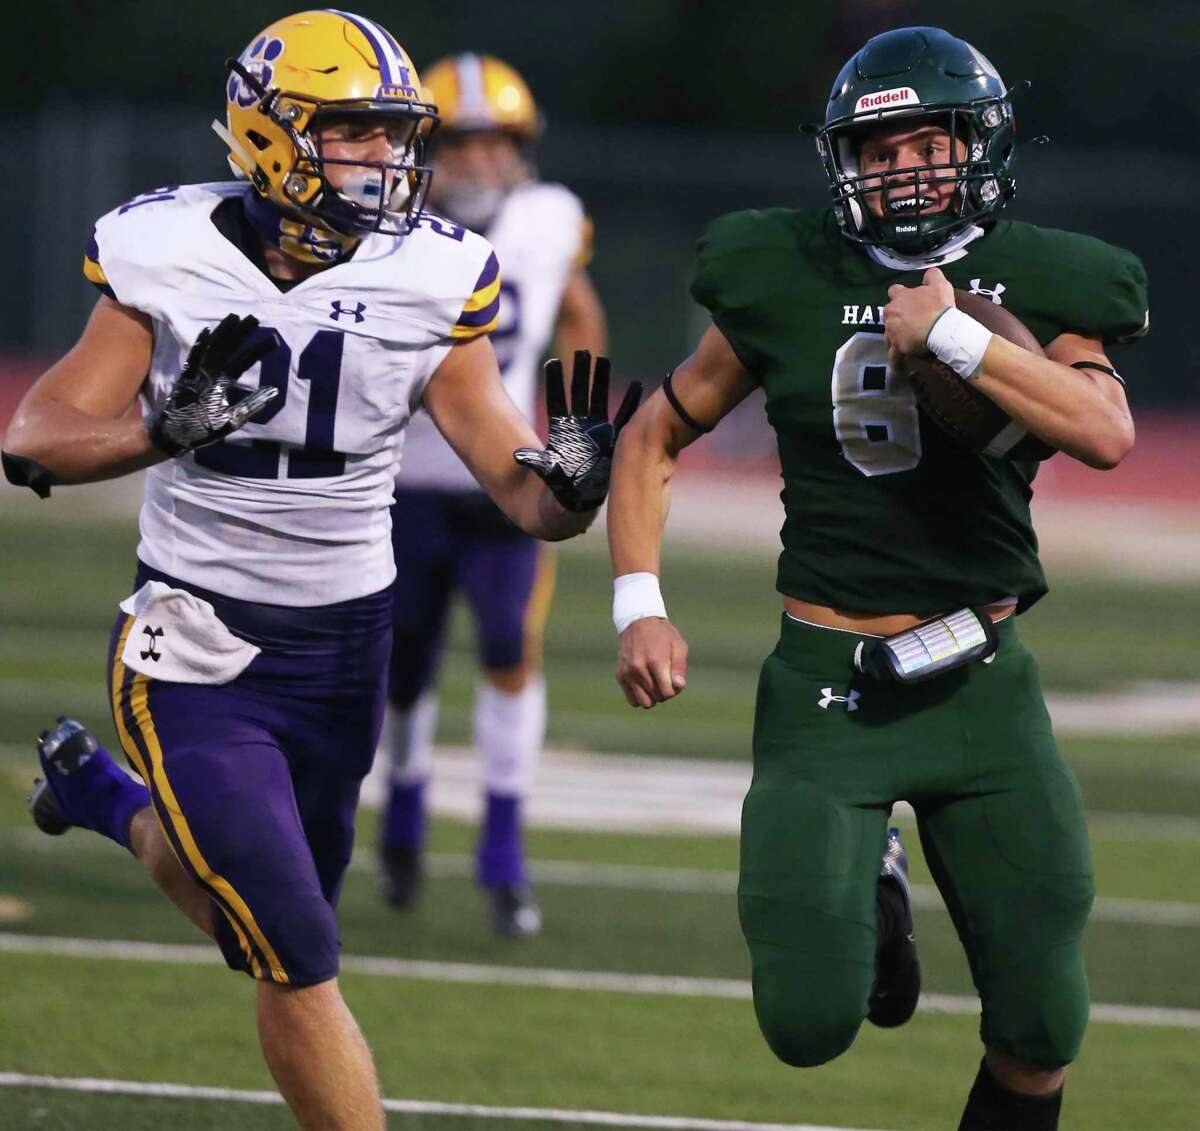 Jesse Horner clears down the sideline on a run for the Hawks as Canyon Lake hosts La Grange at Canyon Lake High School stadium on Sept. 4, 2020.